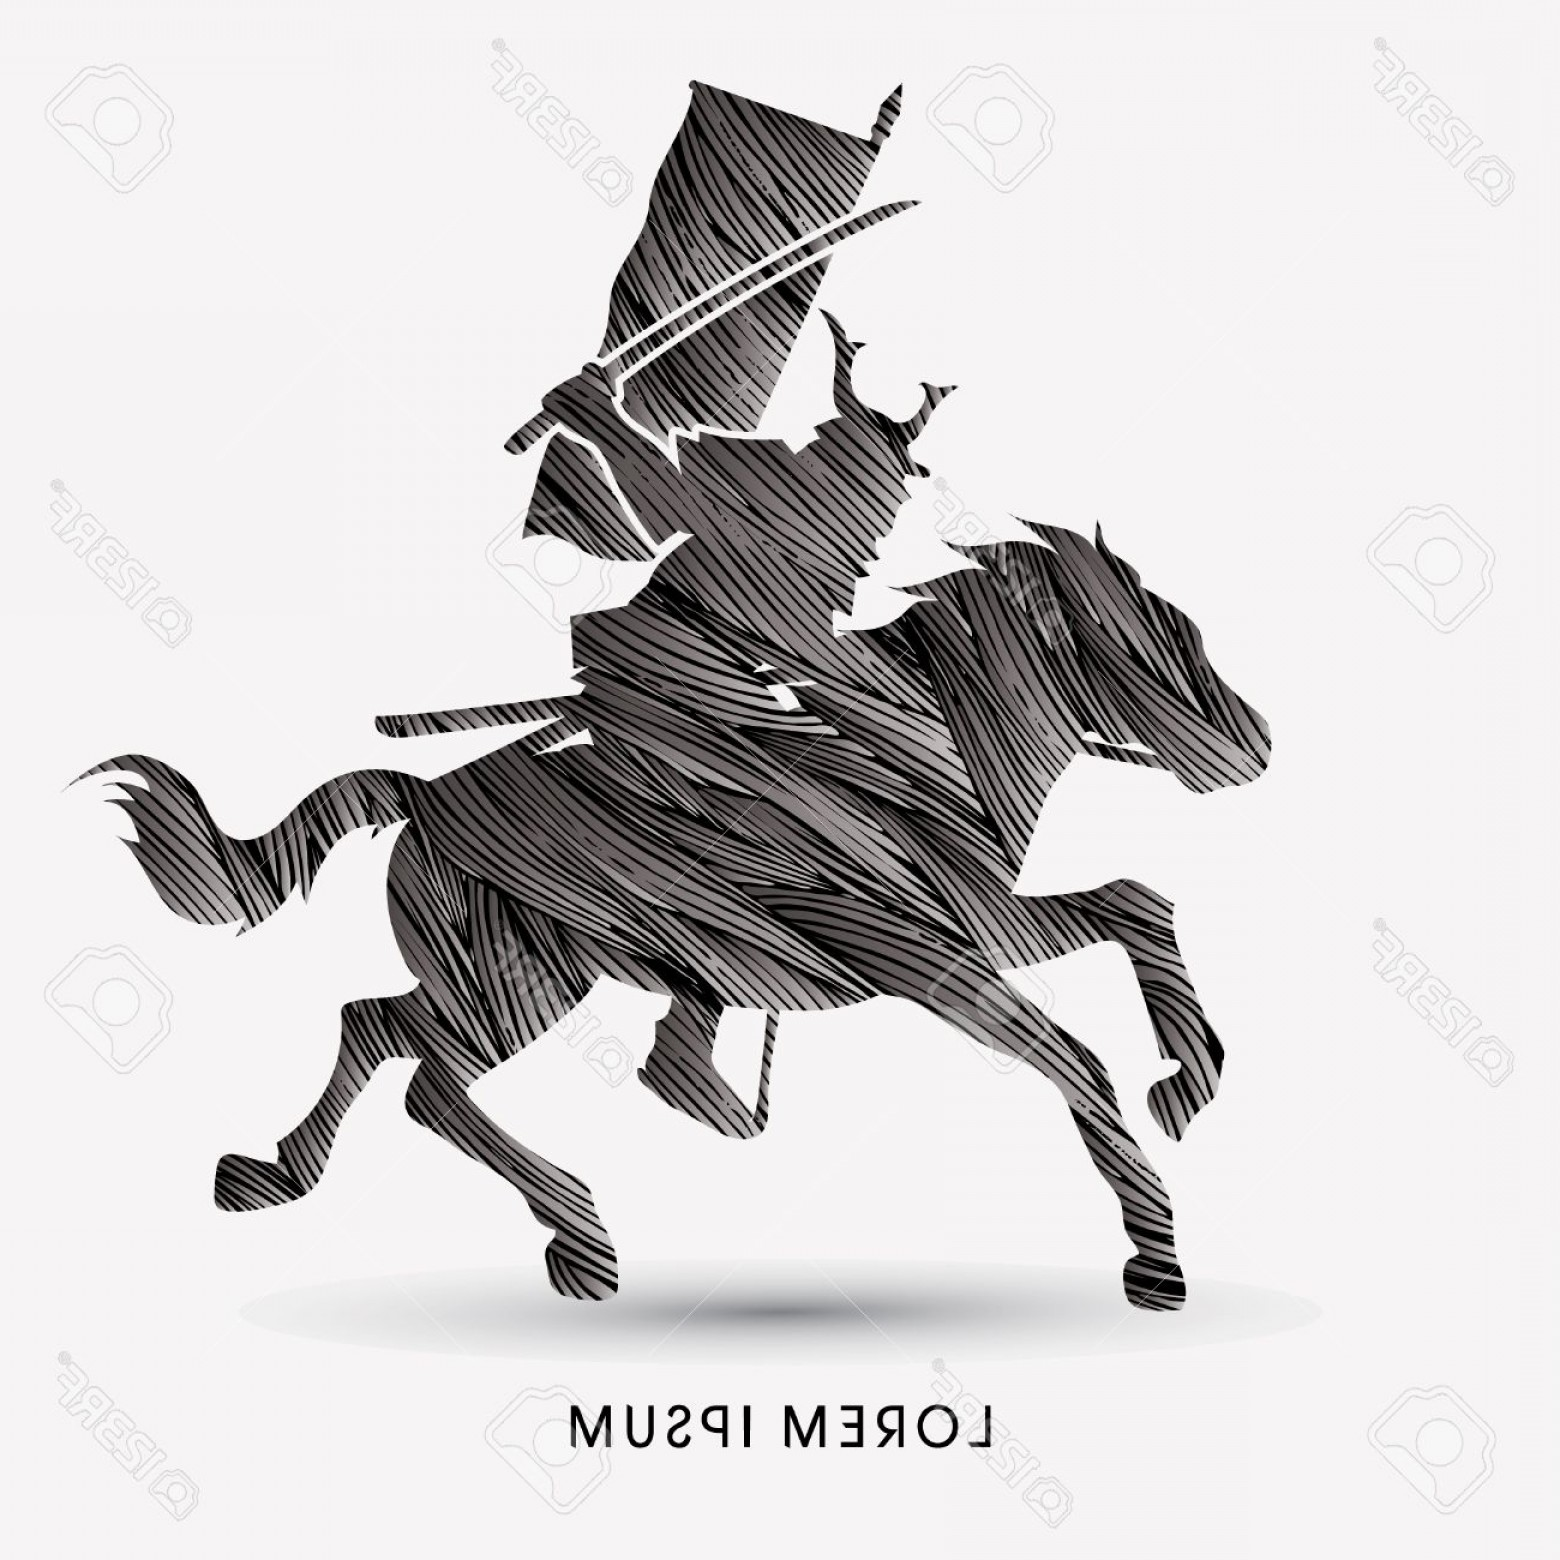 Samurai Warrior Vector: Photostock Vector Samurai Warrior With Sword Katana Riding Horse Designed Using Black Grunge Brush Graphic Vector